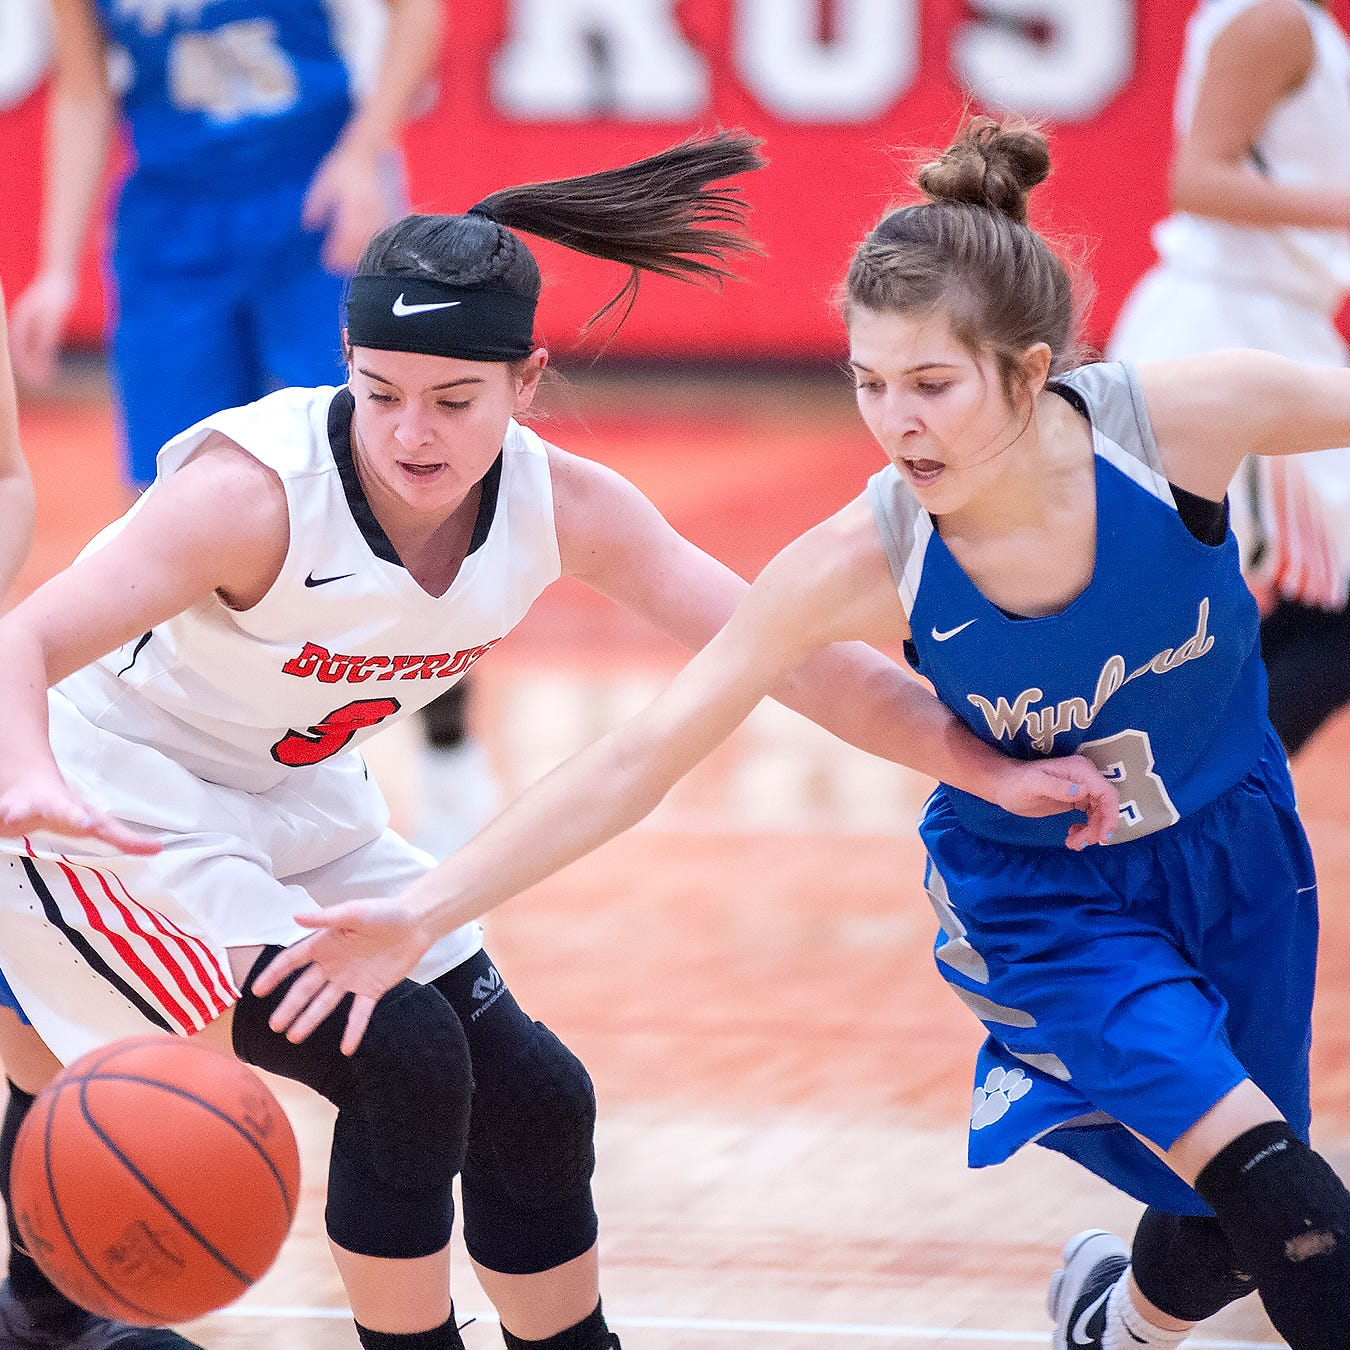 Team effort: Wynford's depth and defense on display in big win over Bucyrus